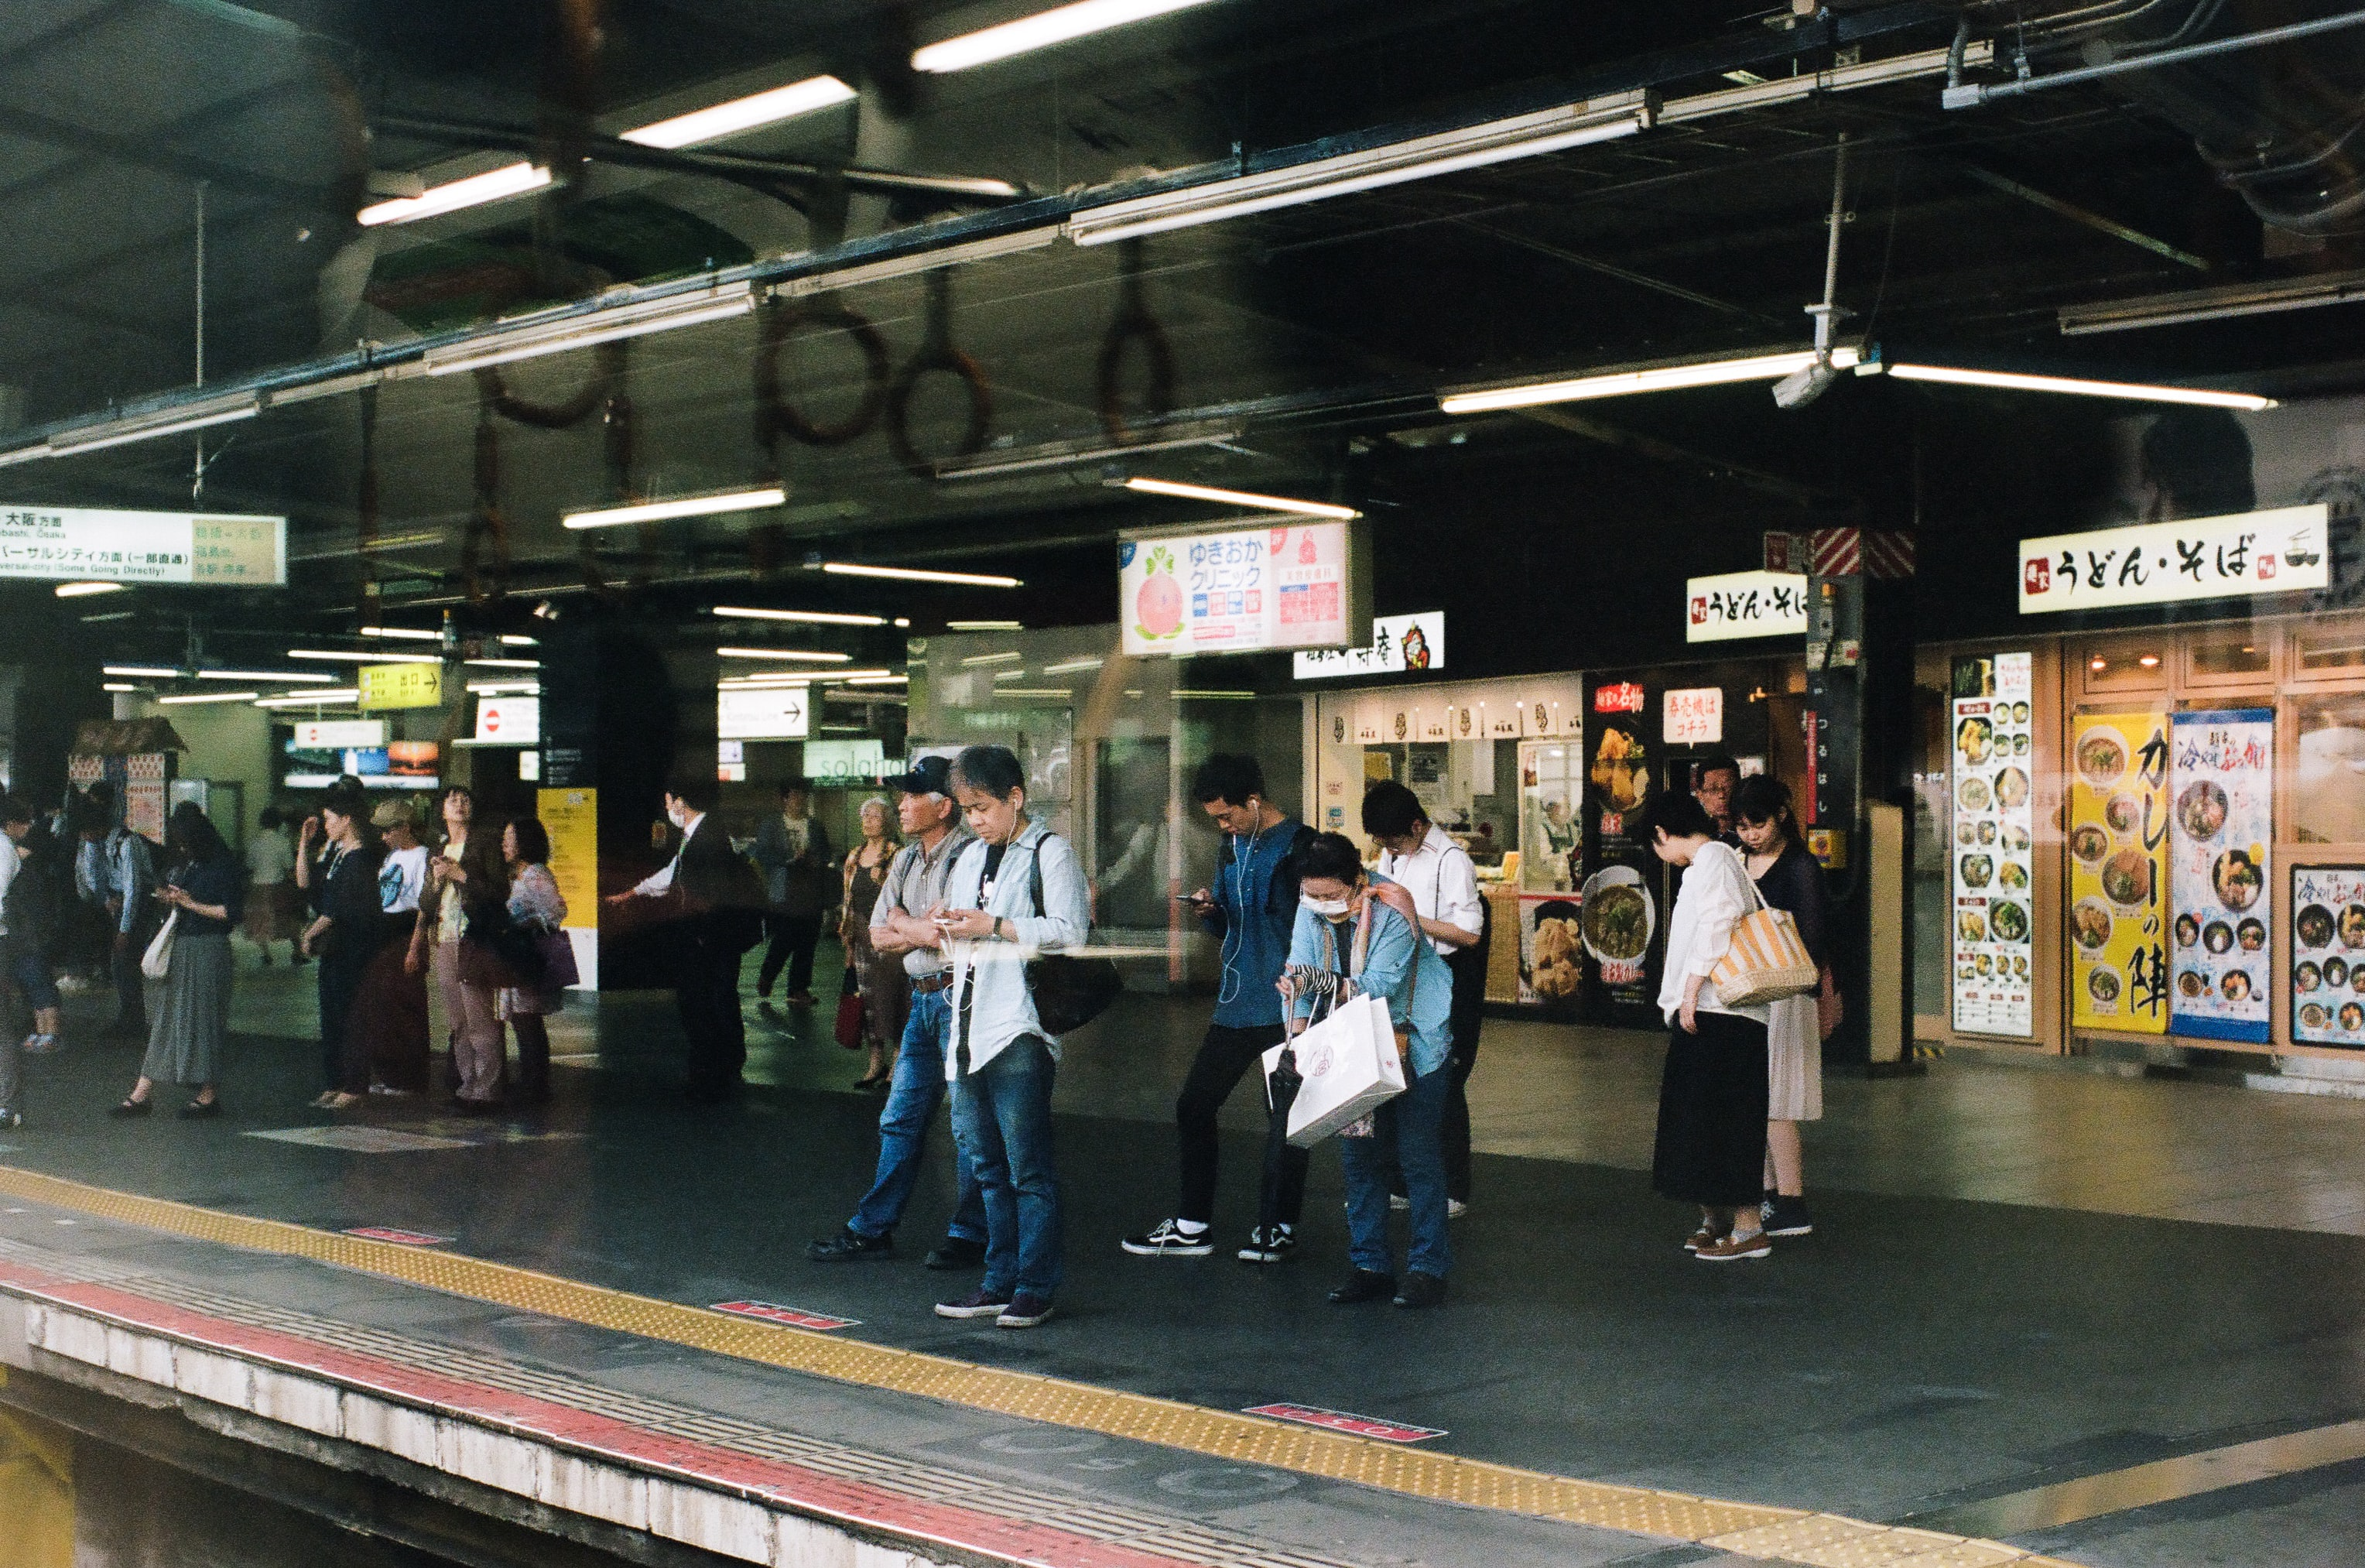 people standing near rails while waiting for train